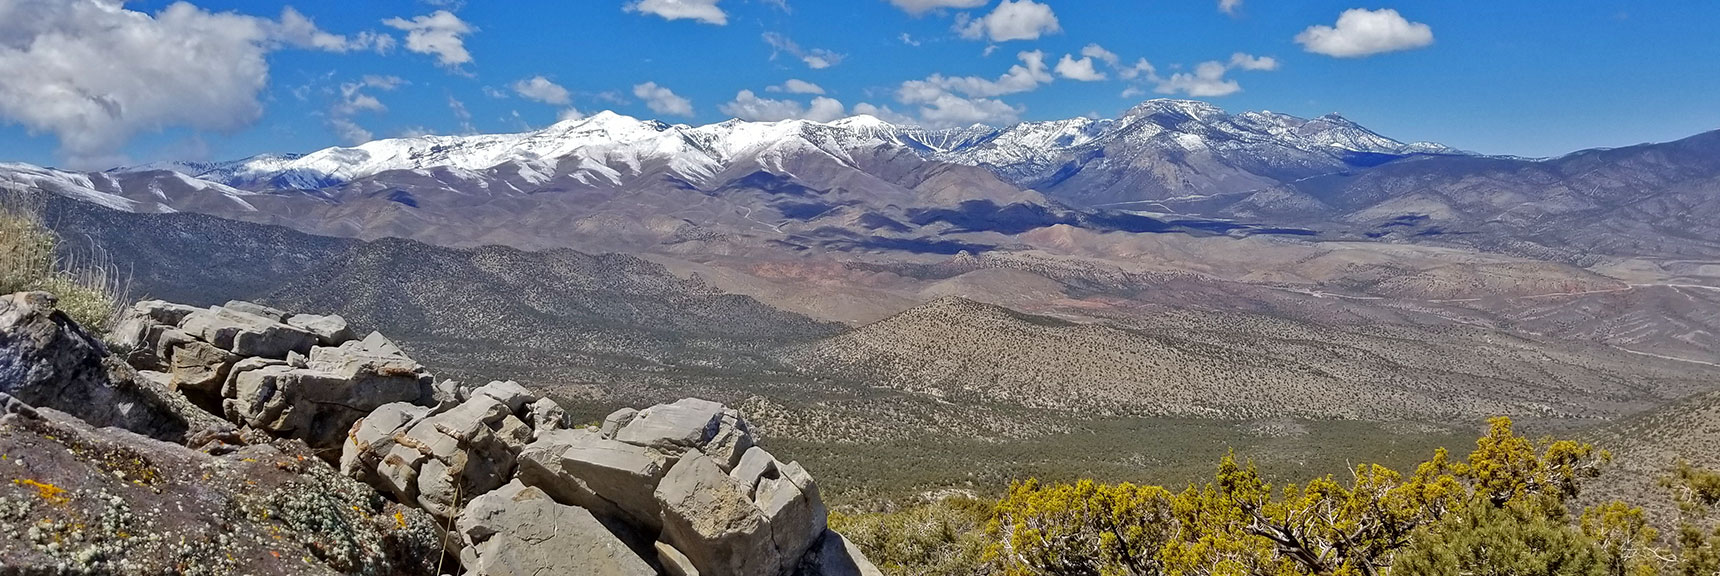 View of Mt. Charleston Wilderness from Just North of La Madre Mt., Nevada